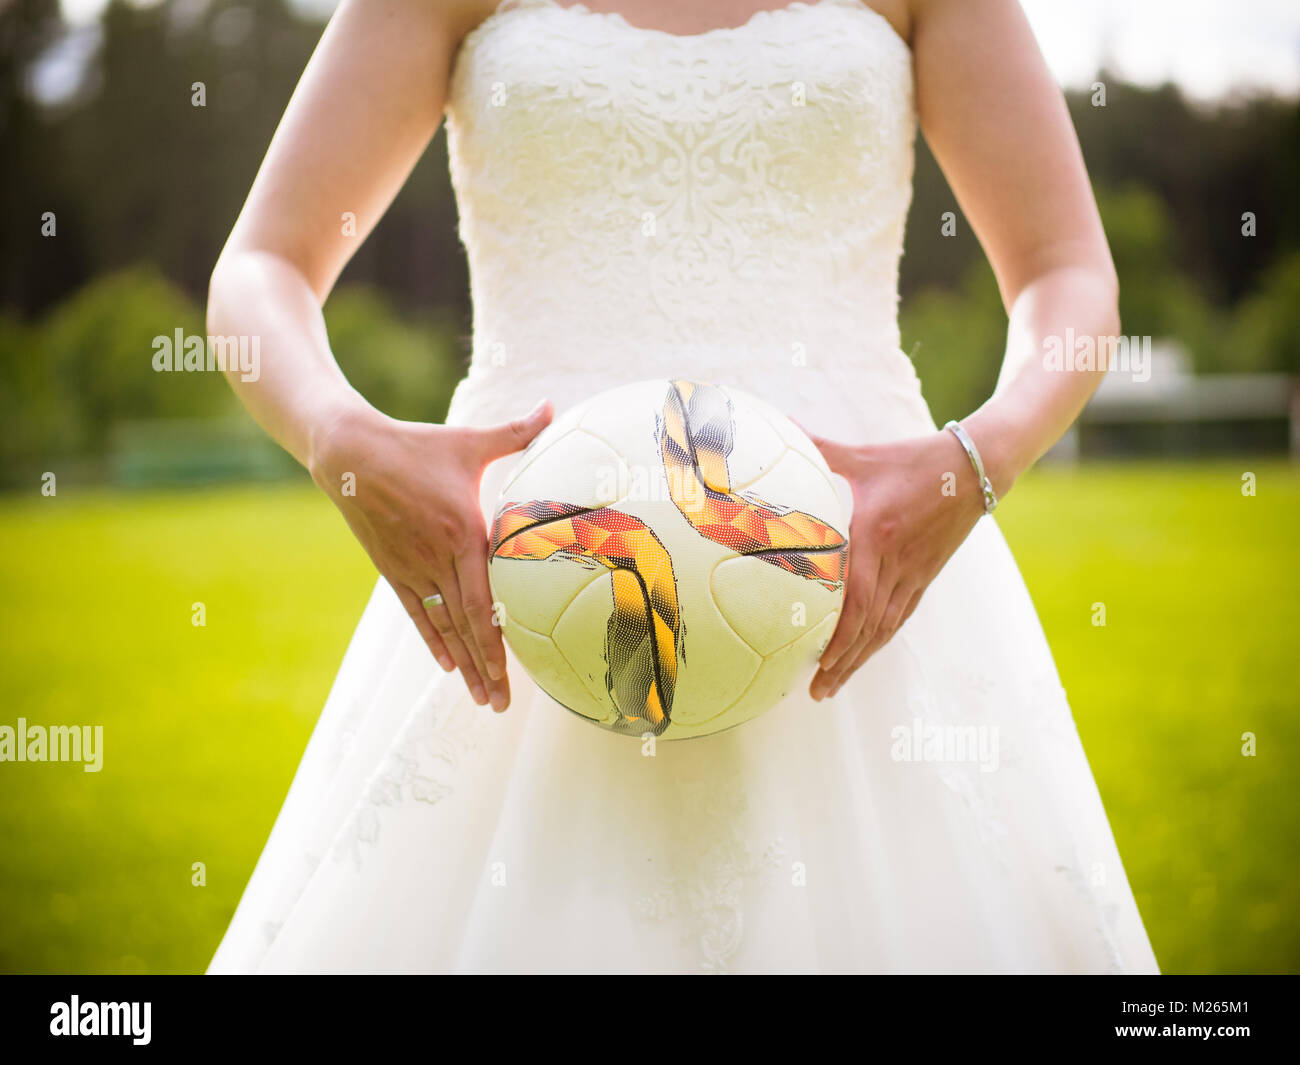 The bride holds the football in her hands - Stock Image